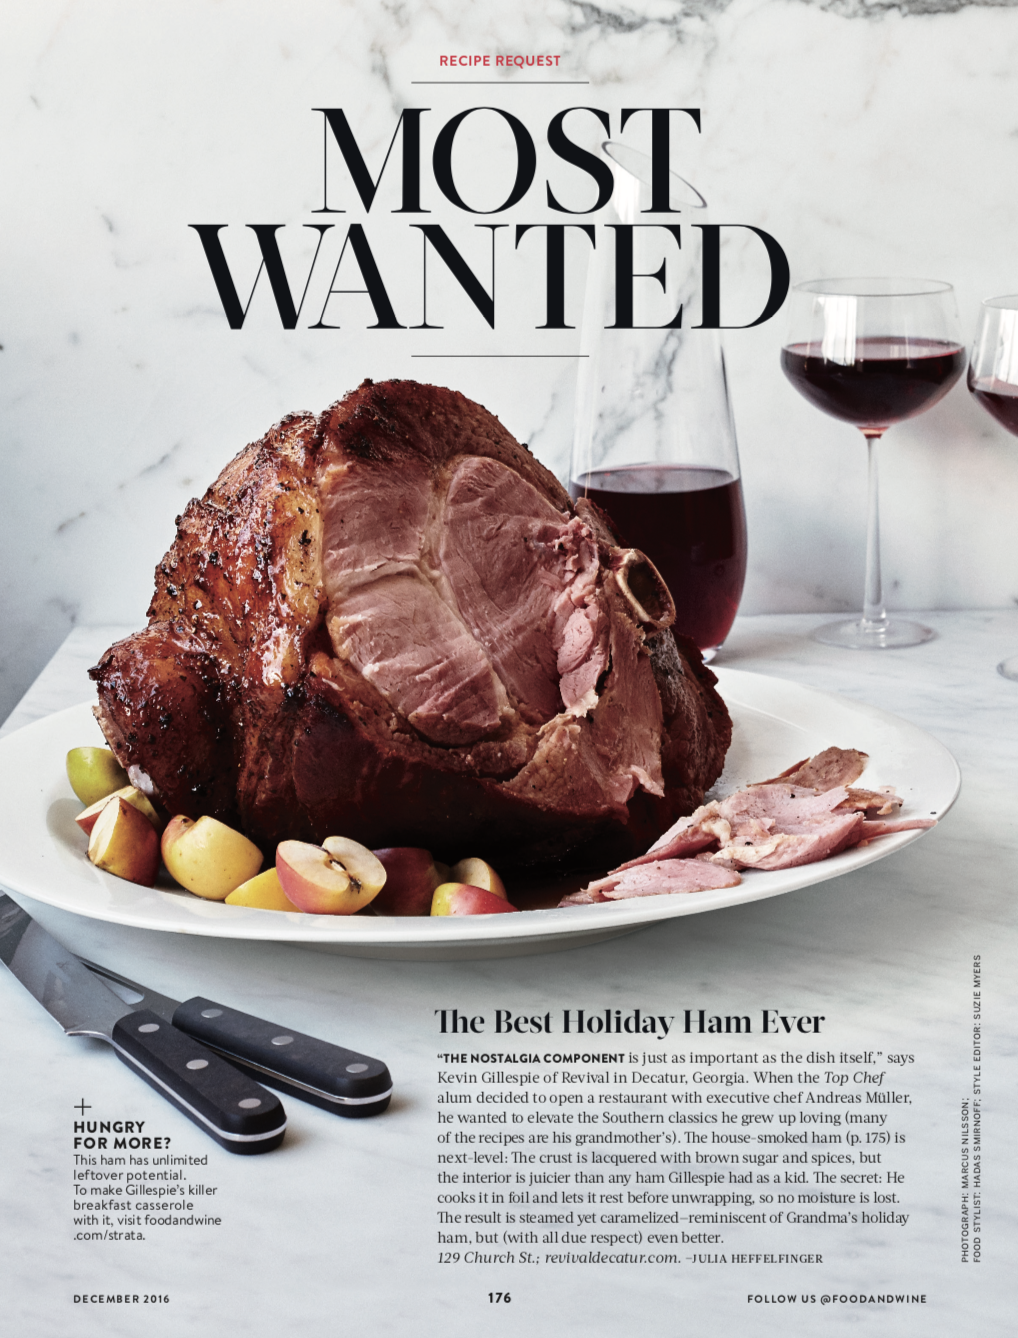 FOOD & WINE MAGAZINE  Most Wanted: Holiday Ham, December 2016